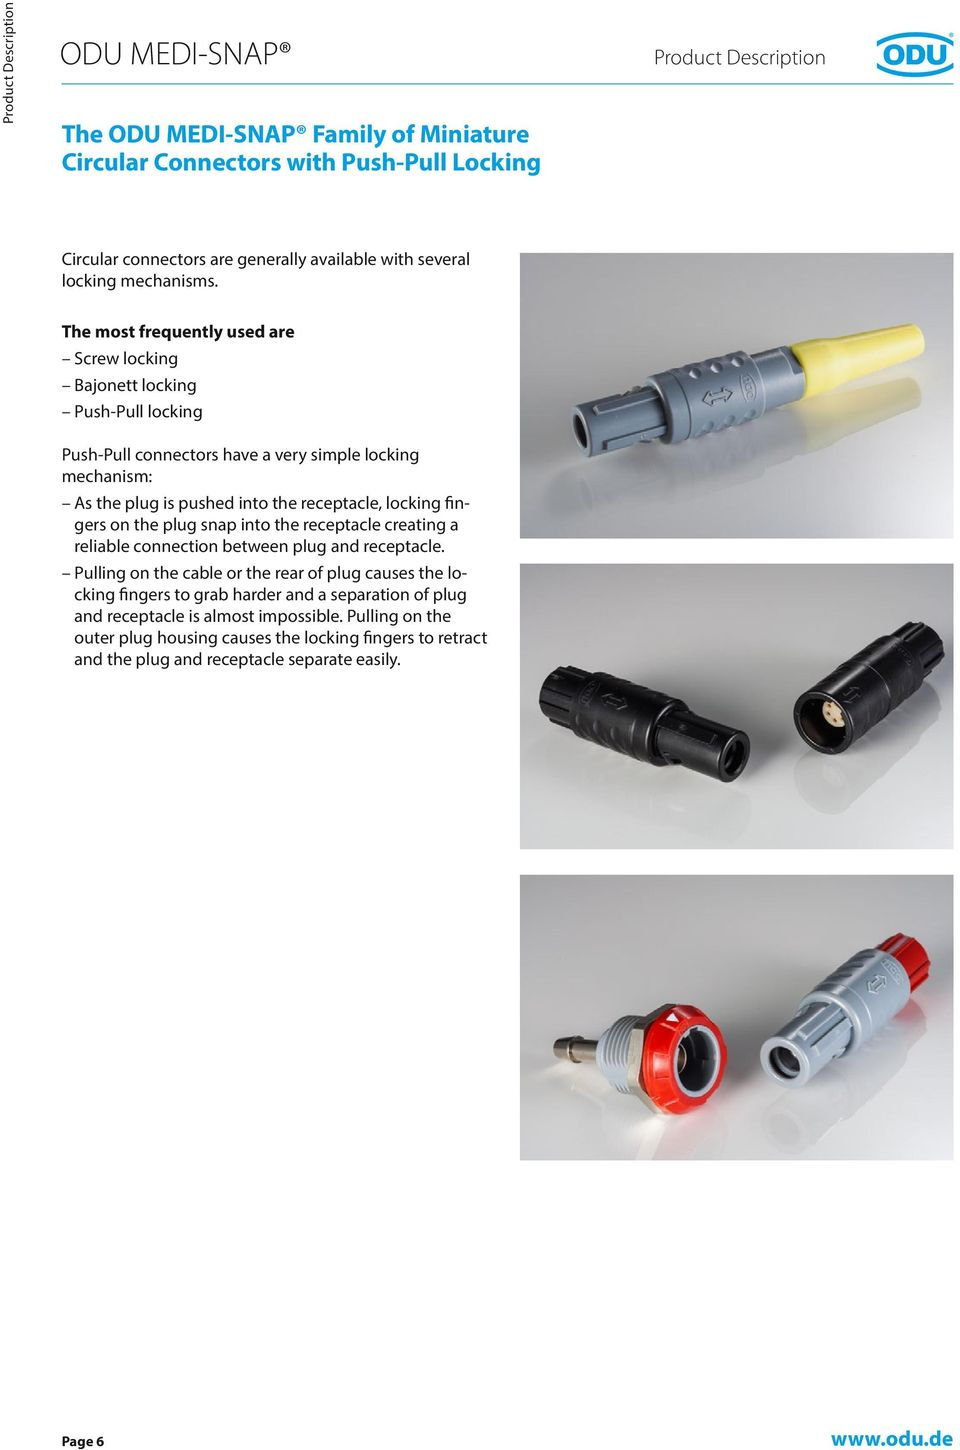 The most frequently used are Screw locking Bajonett locking Push-Pull locking Push-Pull connectors have a very simple locking mechanism: As the plug is pushed into the receptacle, locking